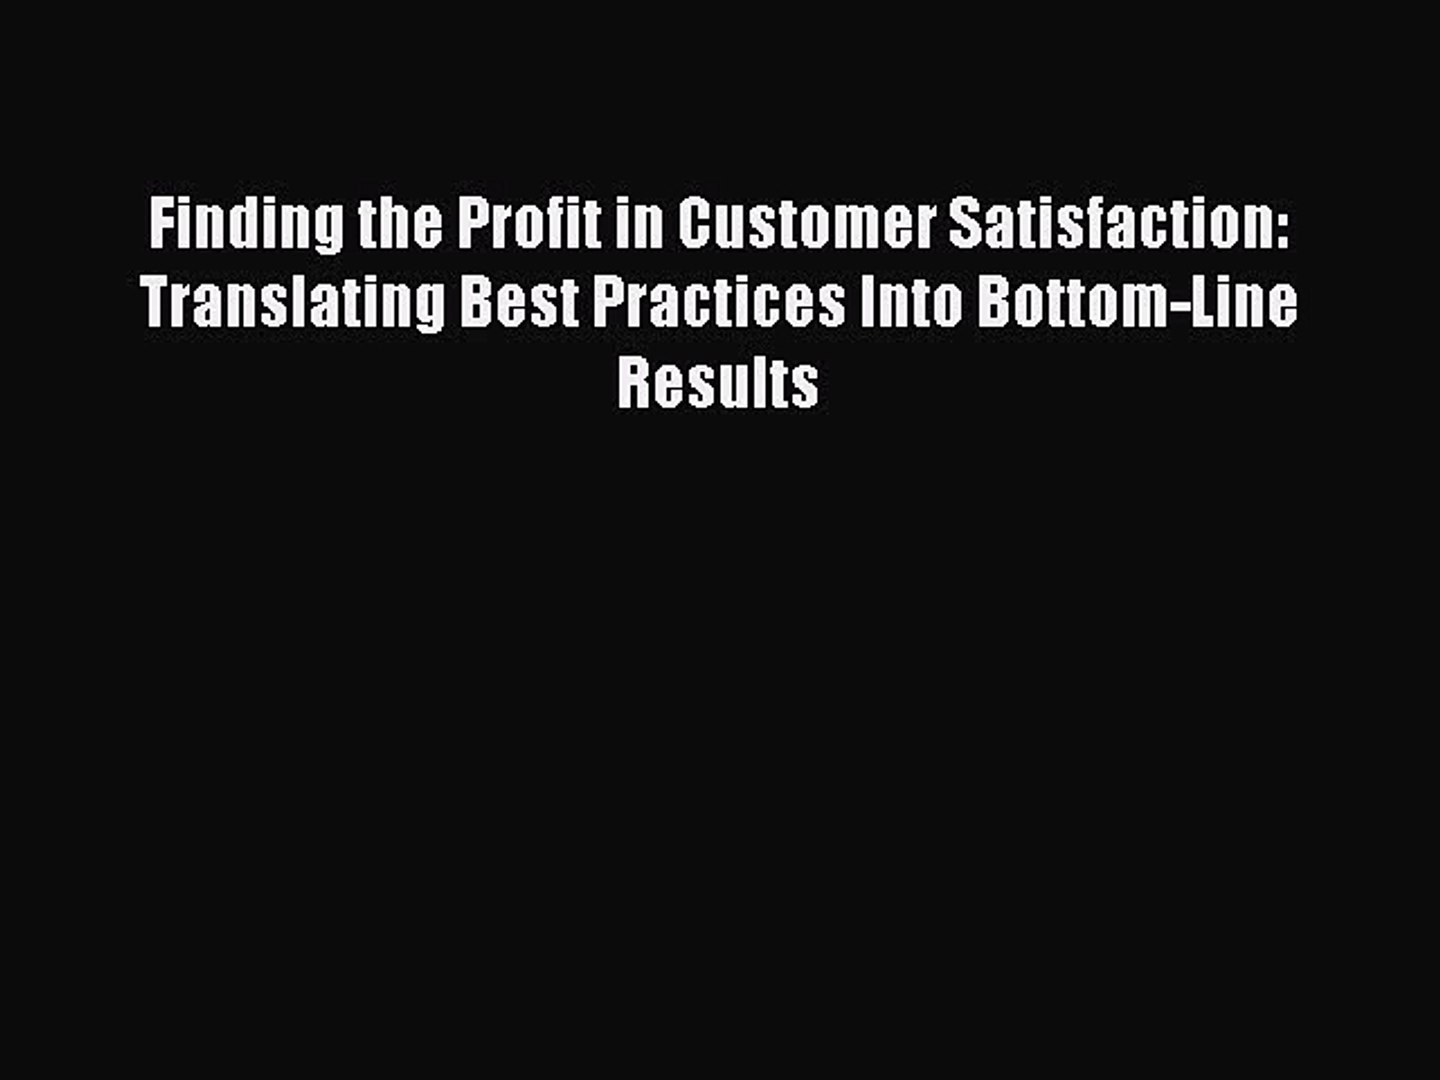 Read Finding the Profit in Customer Satisfaction: Translating Best Practices Into Bottom-Line